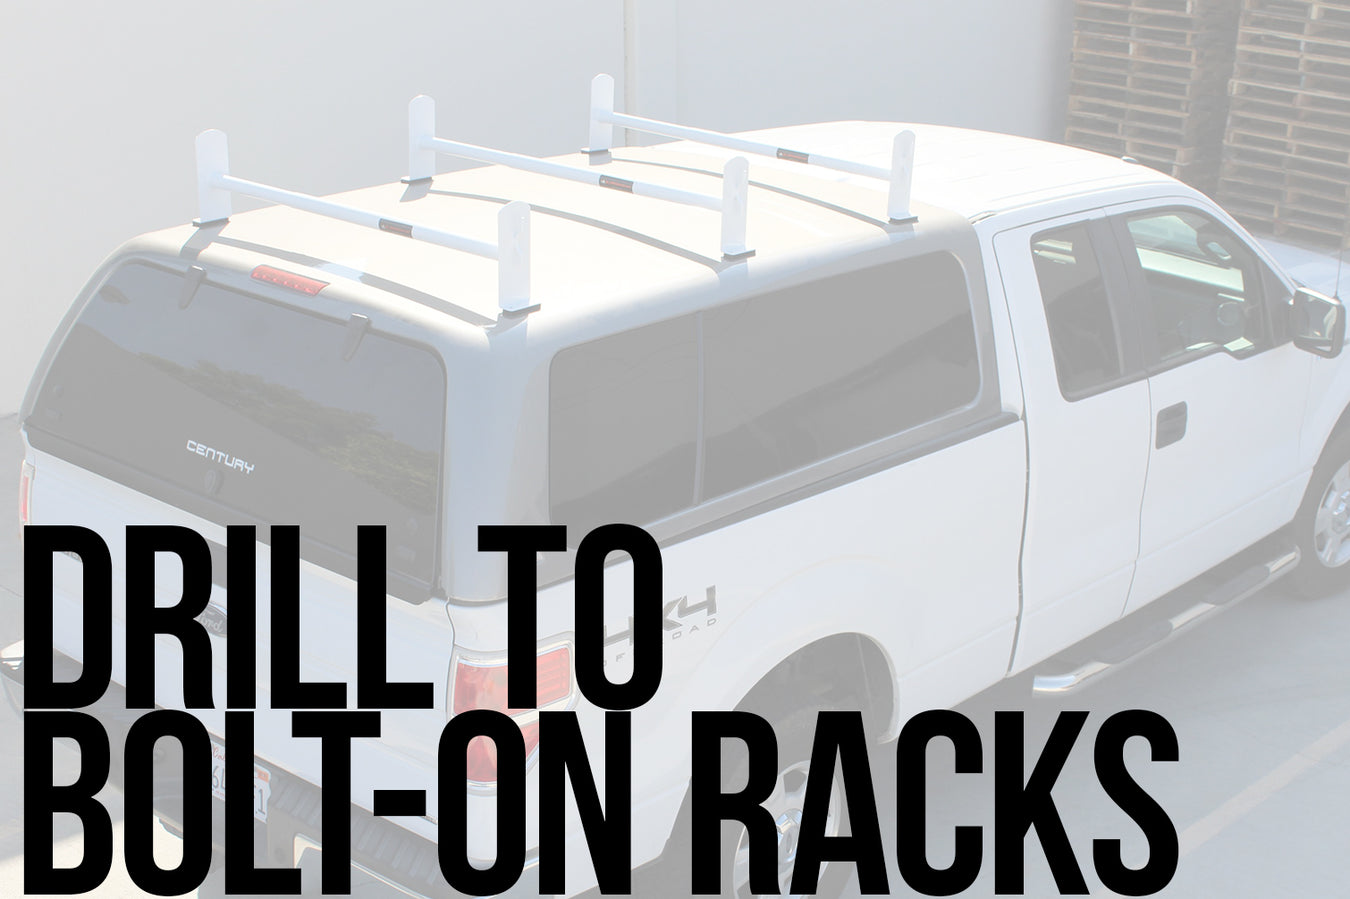 Drill to Bolt-on Racks